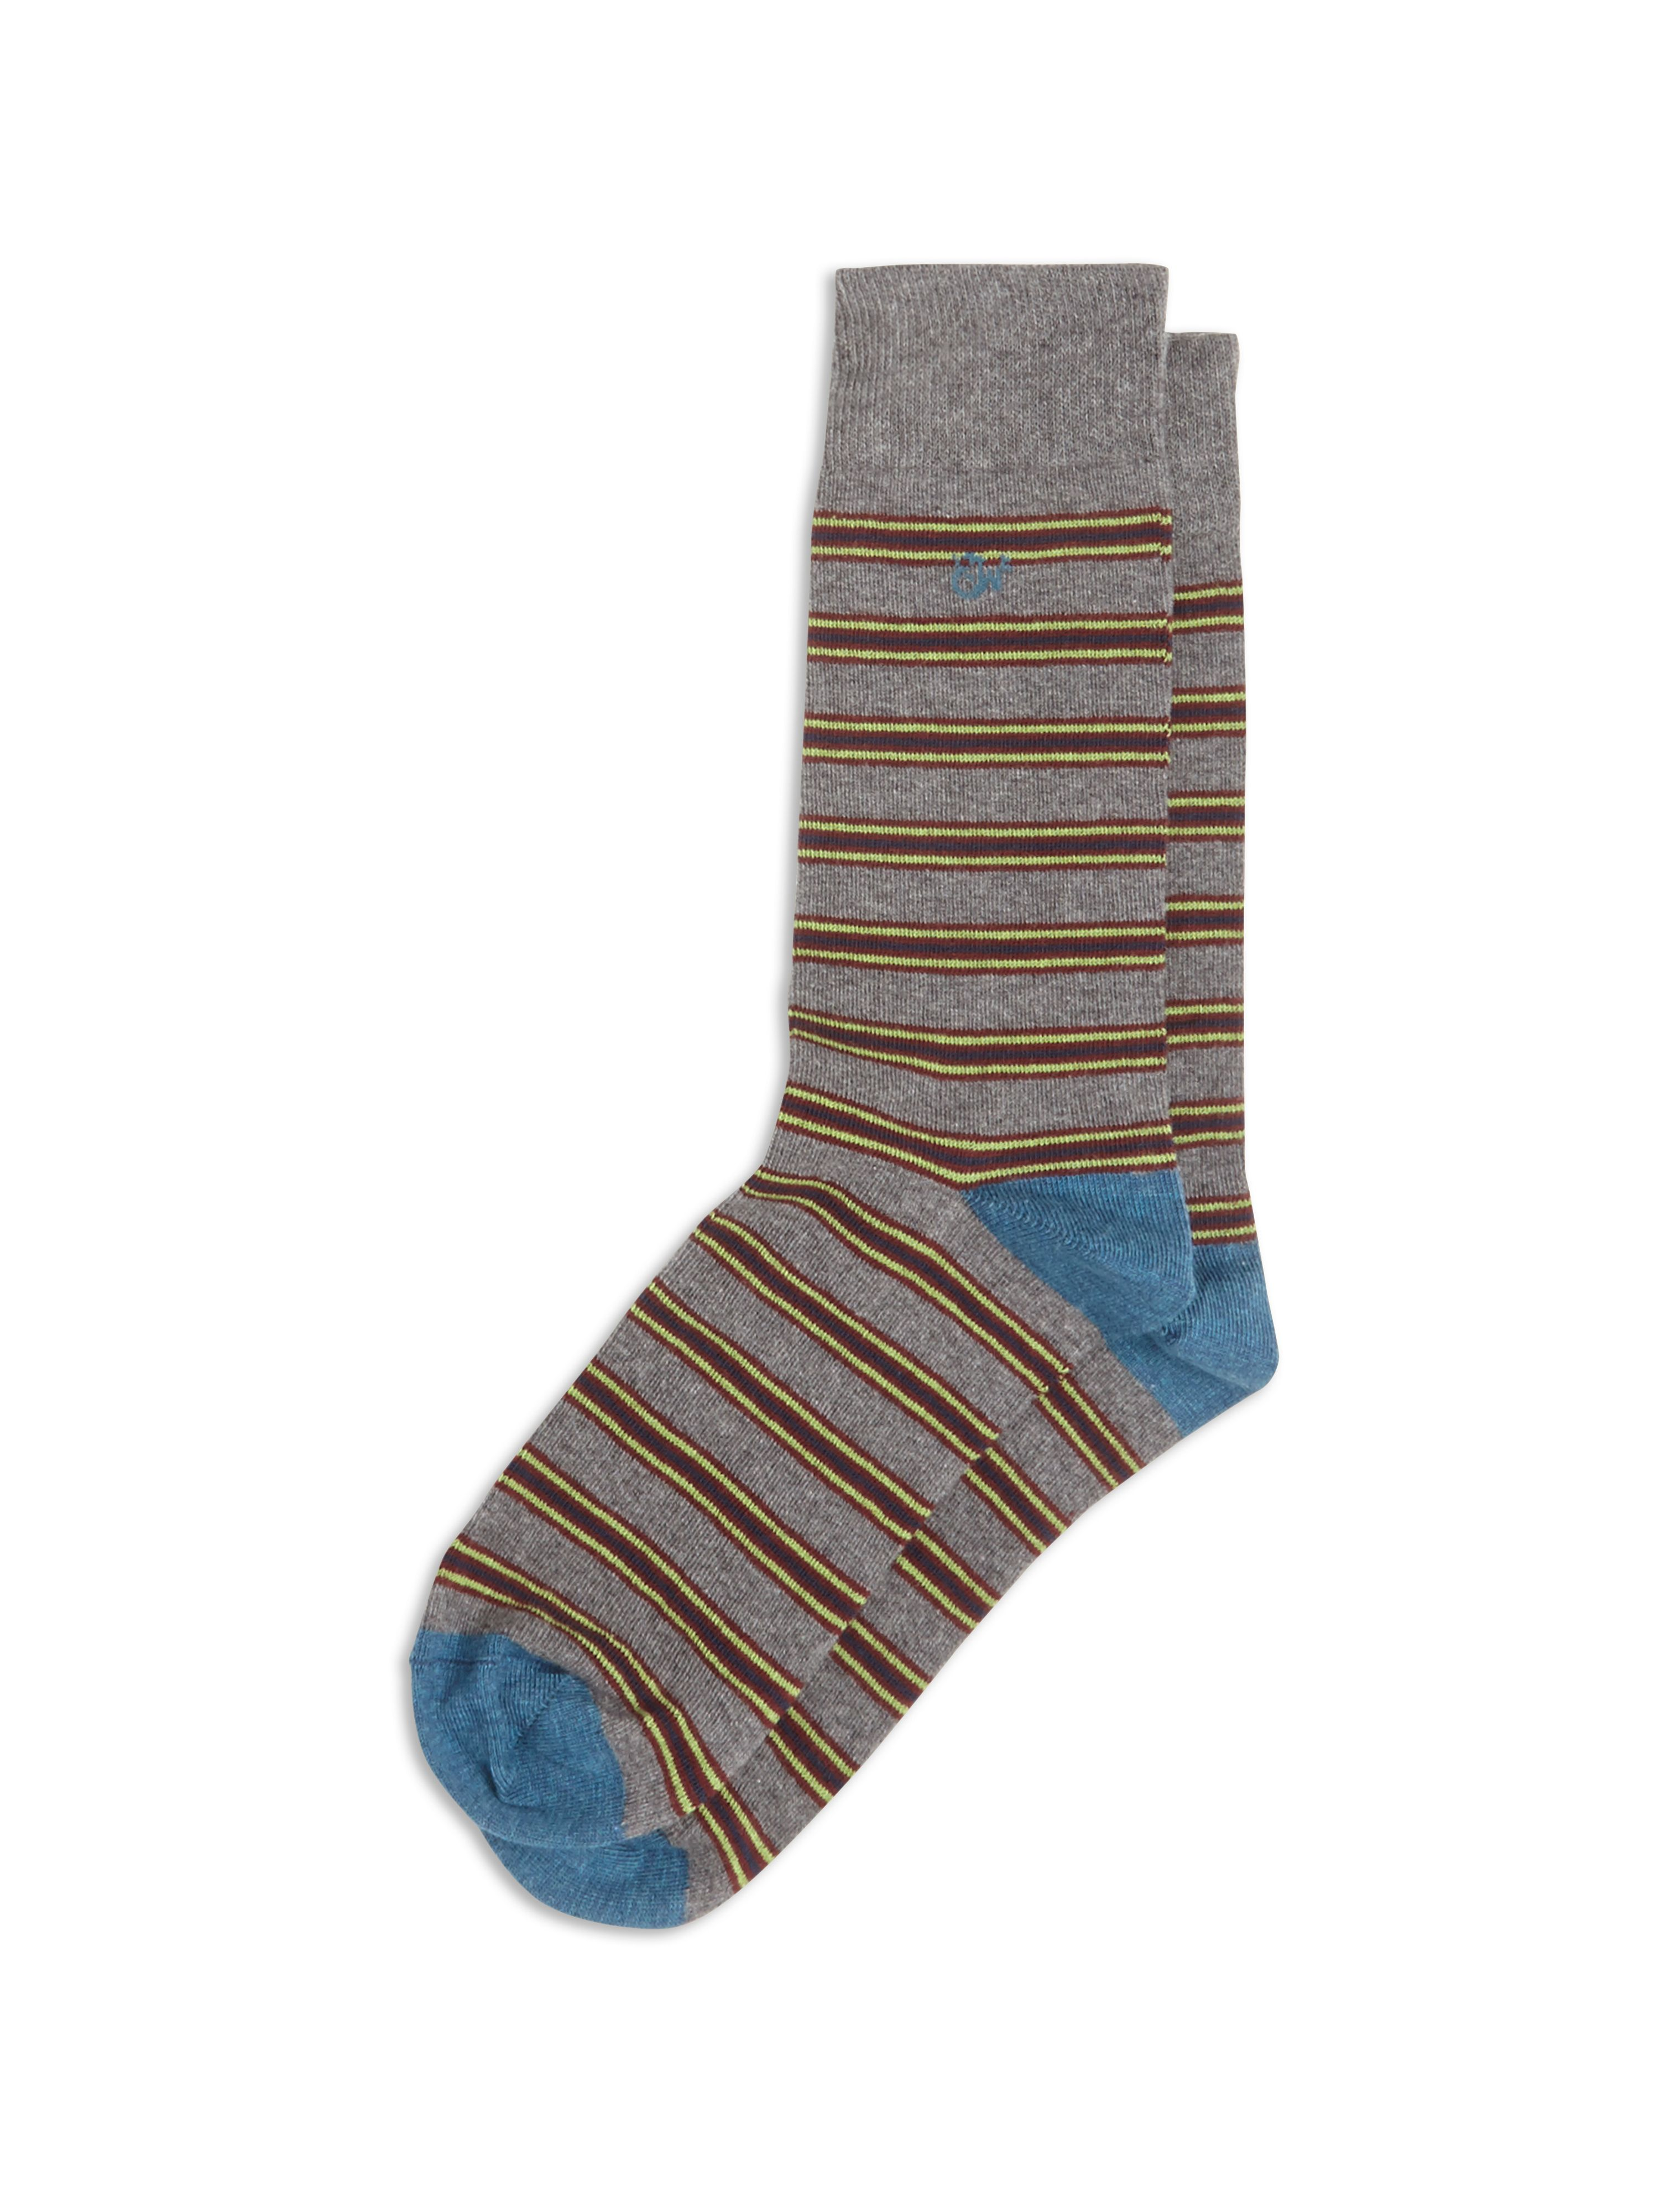 Frank stripe socks